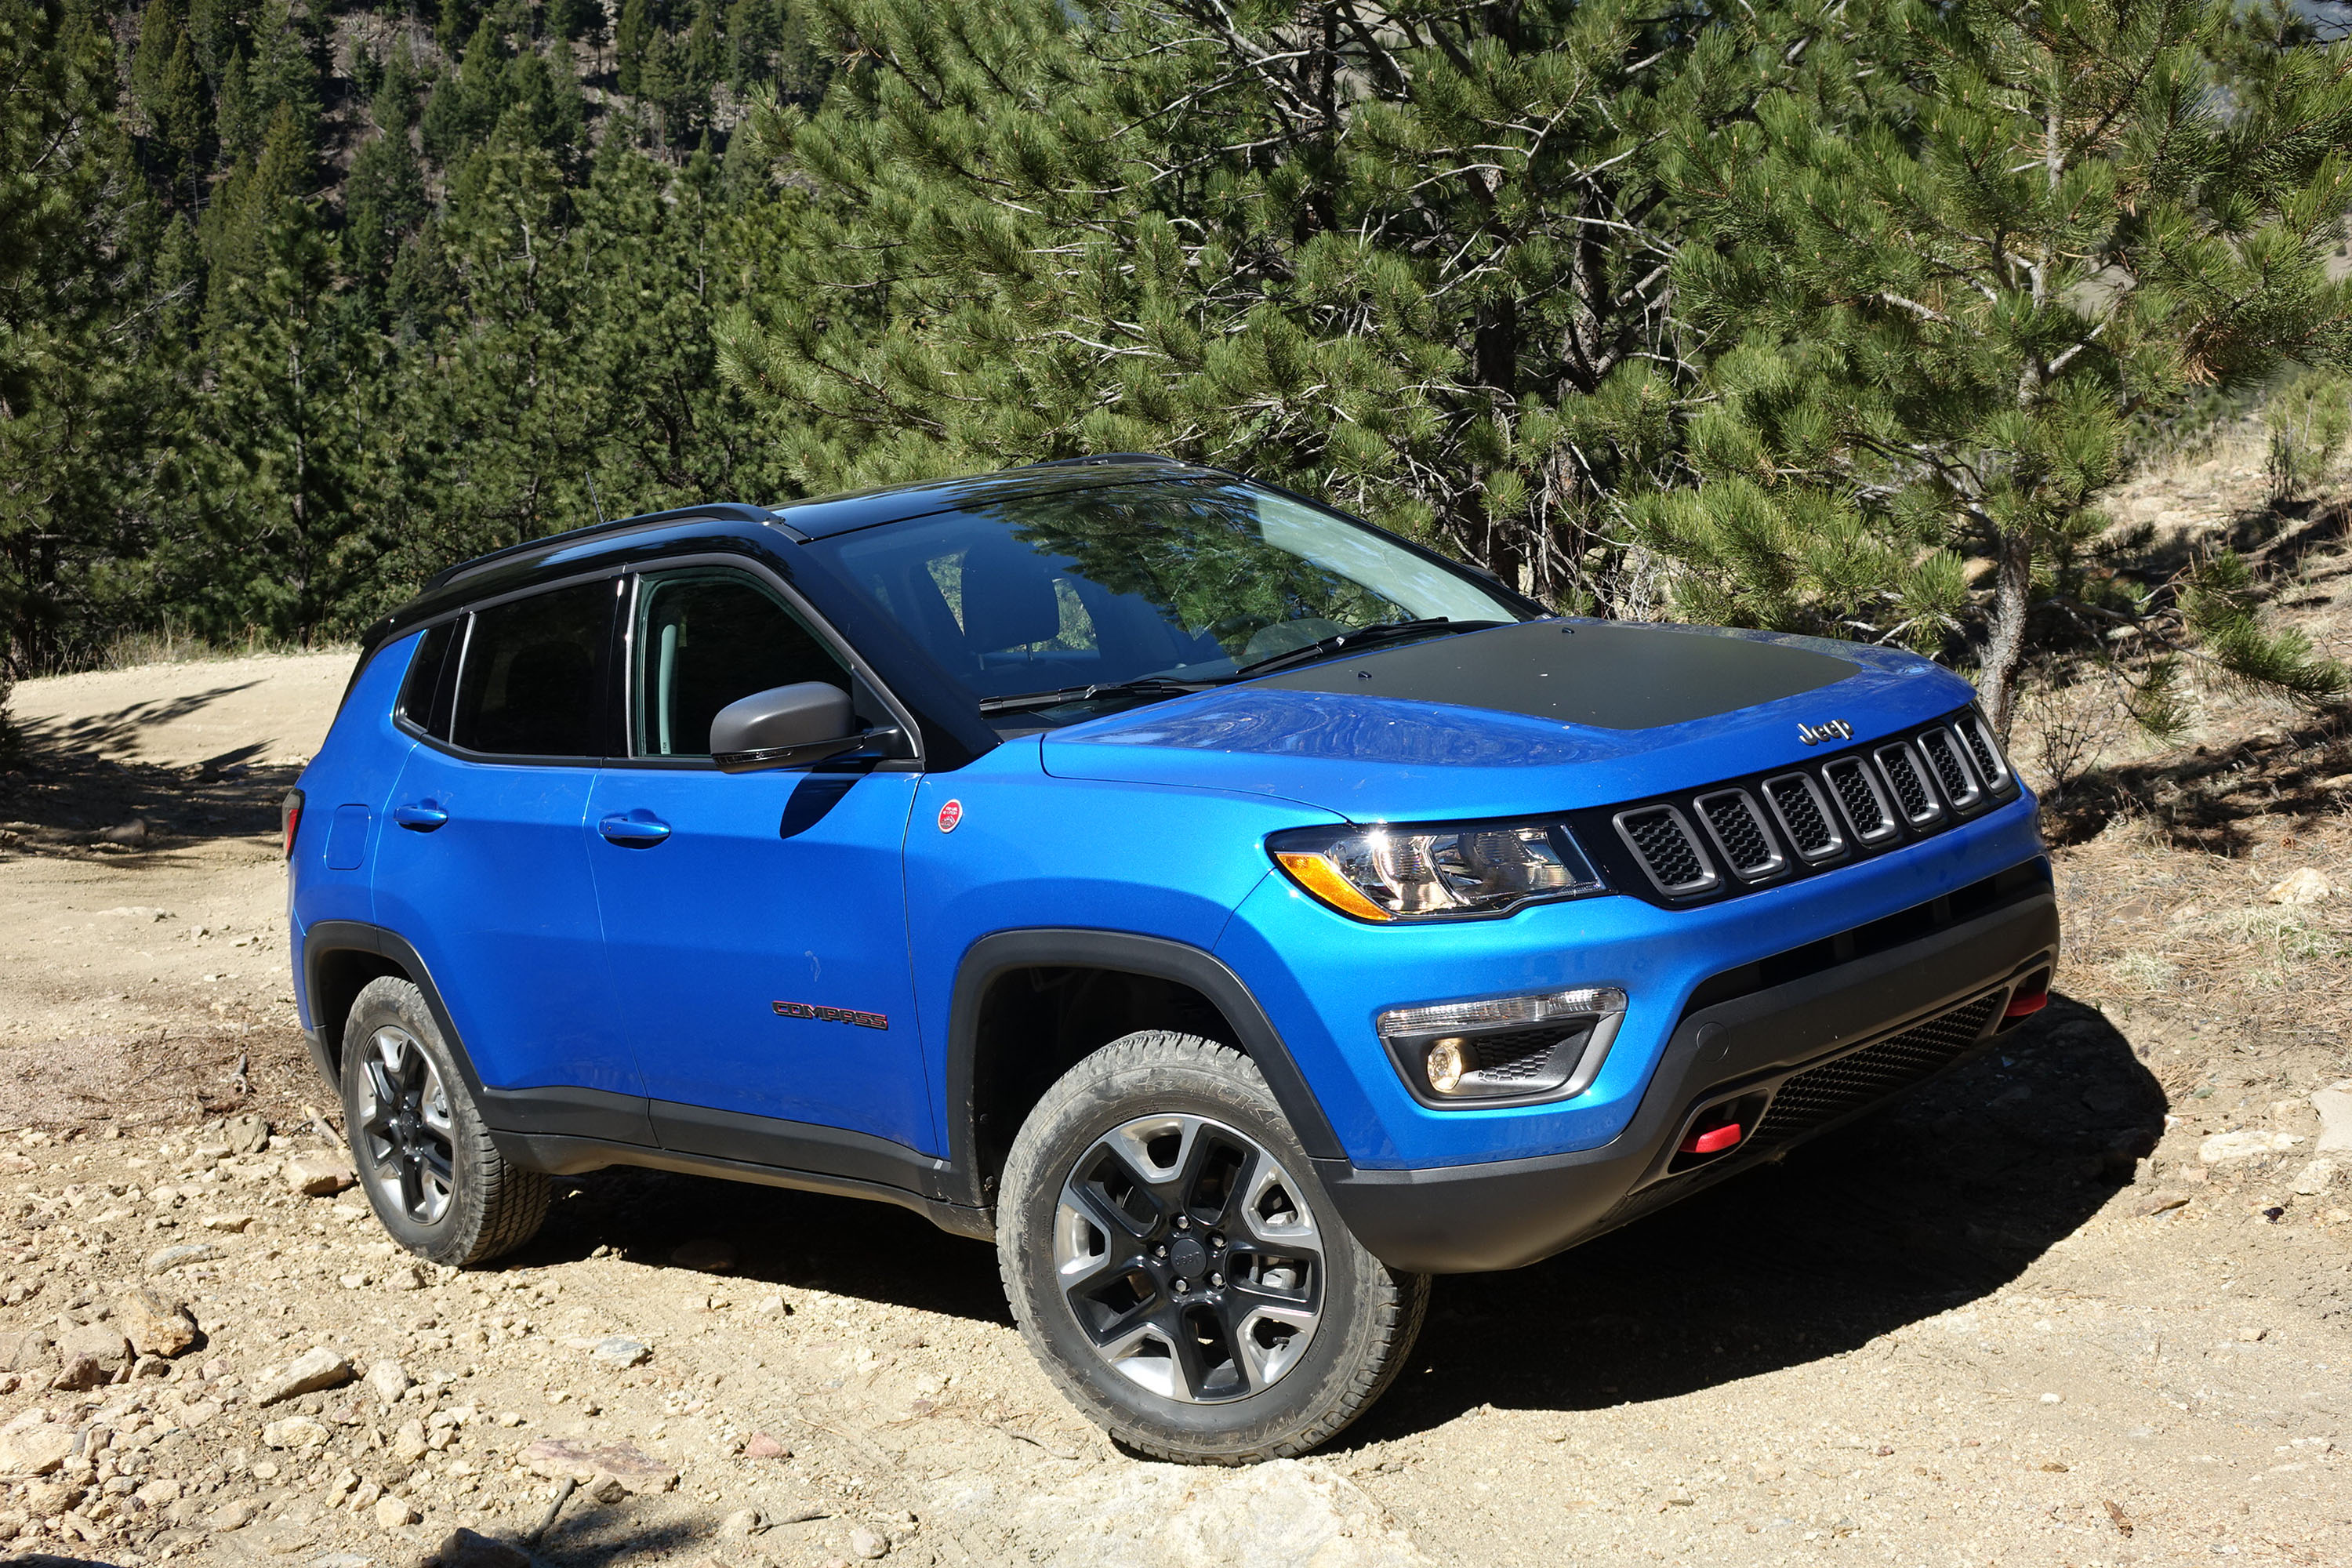 2017 Jeep pass Trailhawk off road review